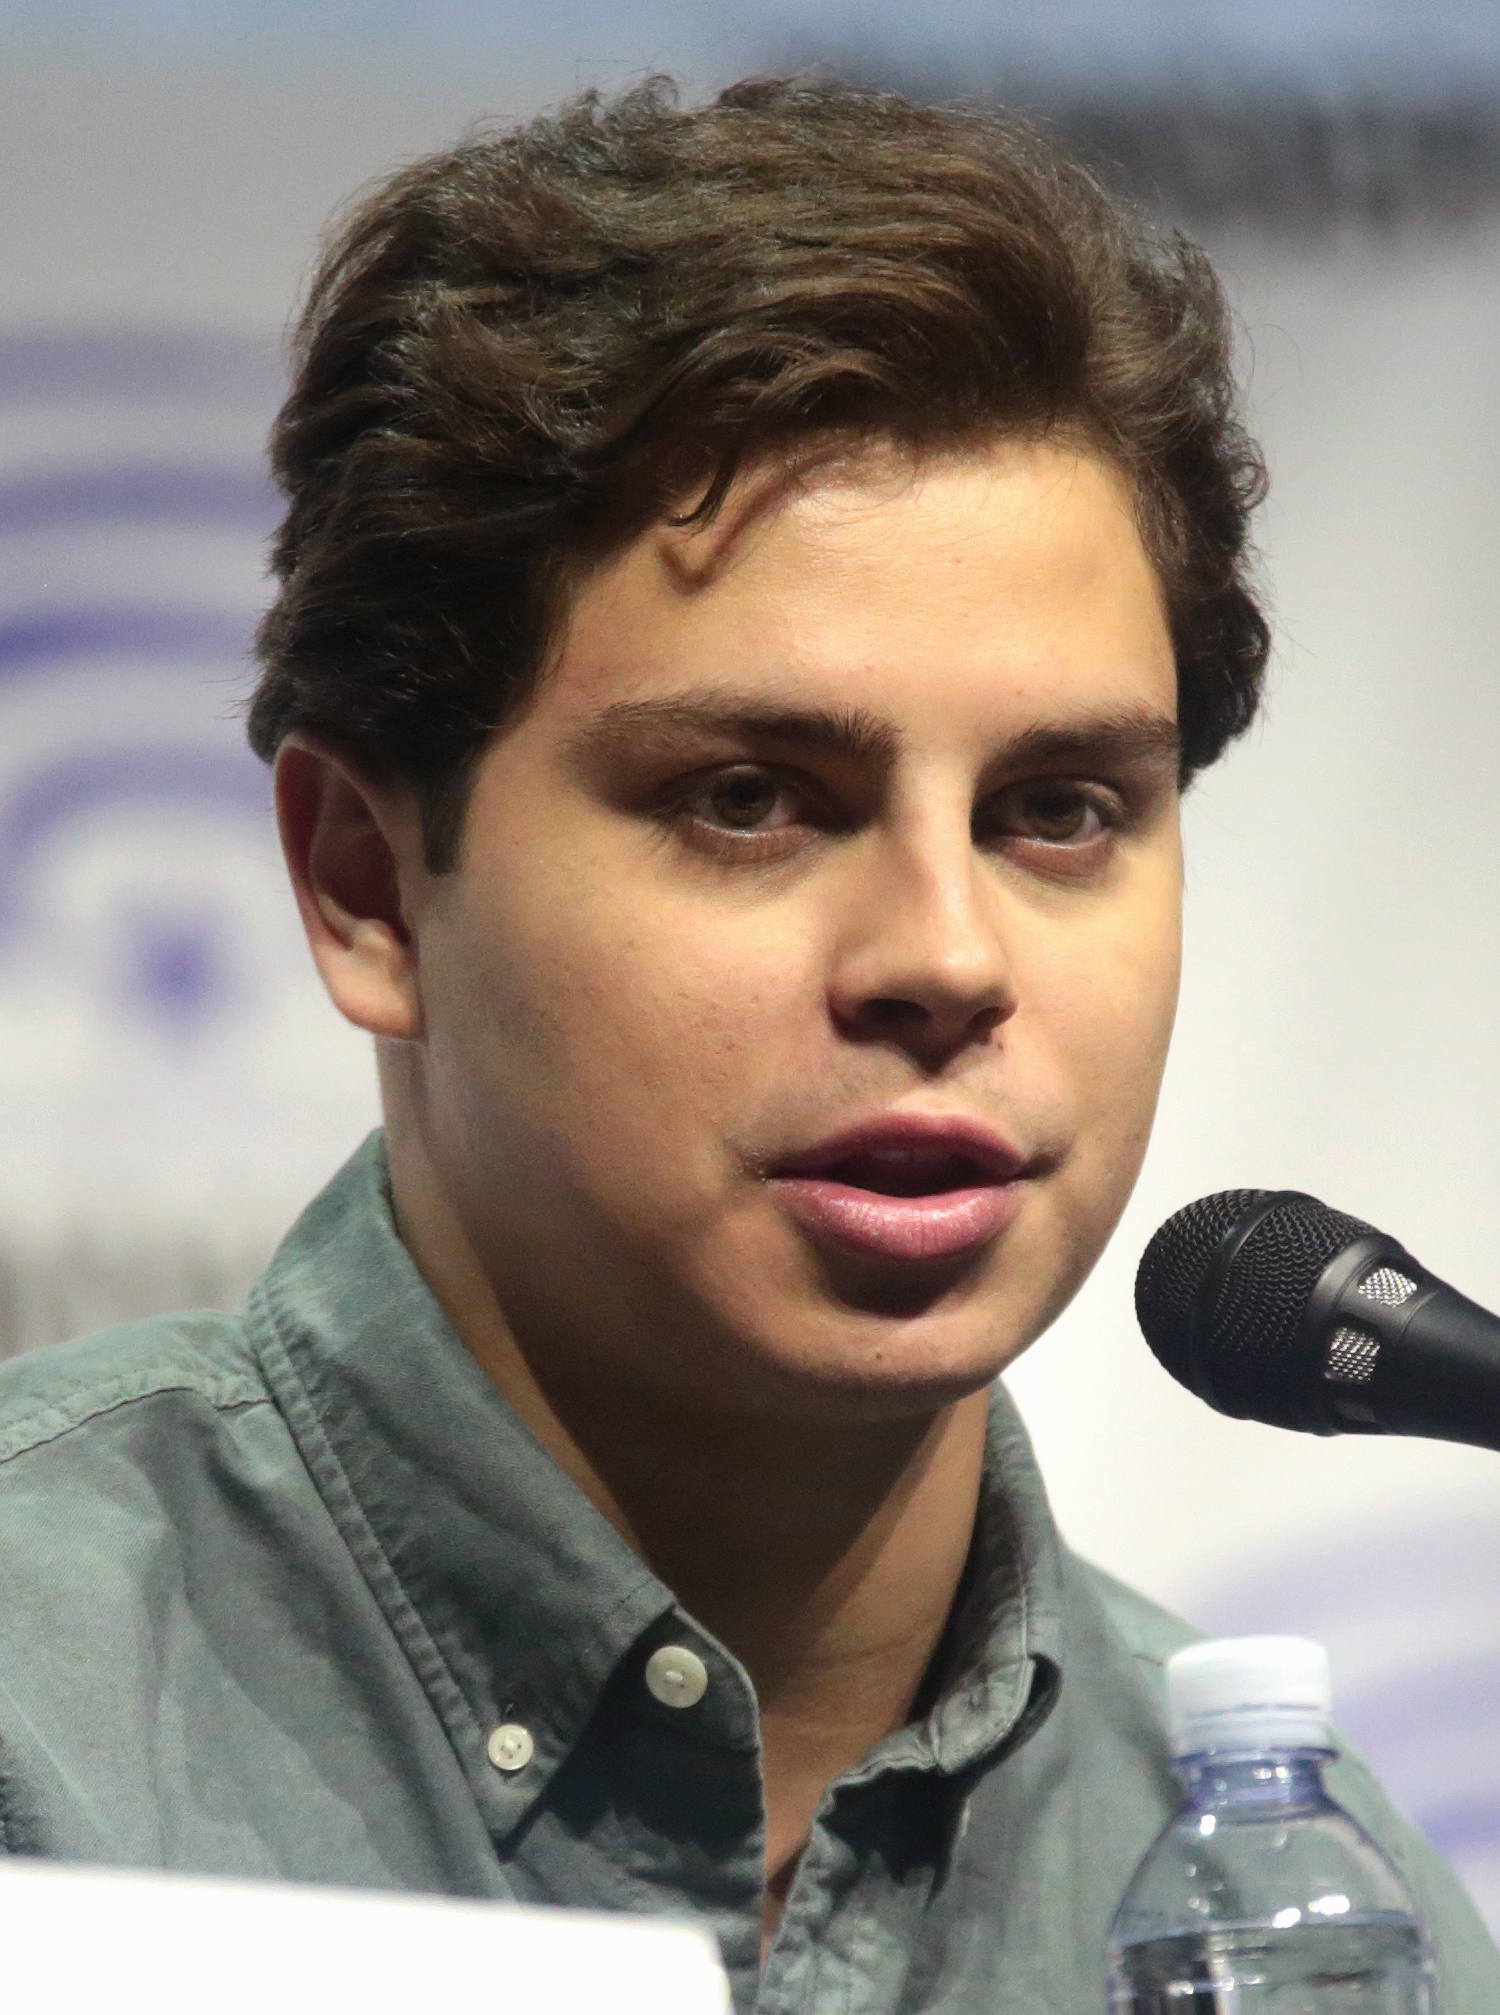 Jake T. Austin Sitcom JB Slaying Chad Became Incel